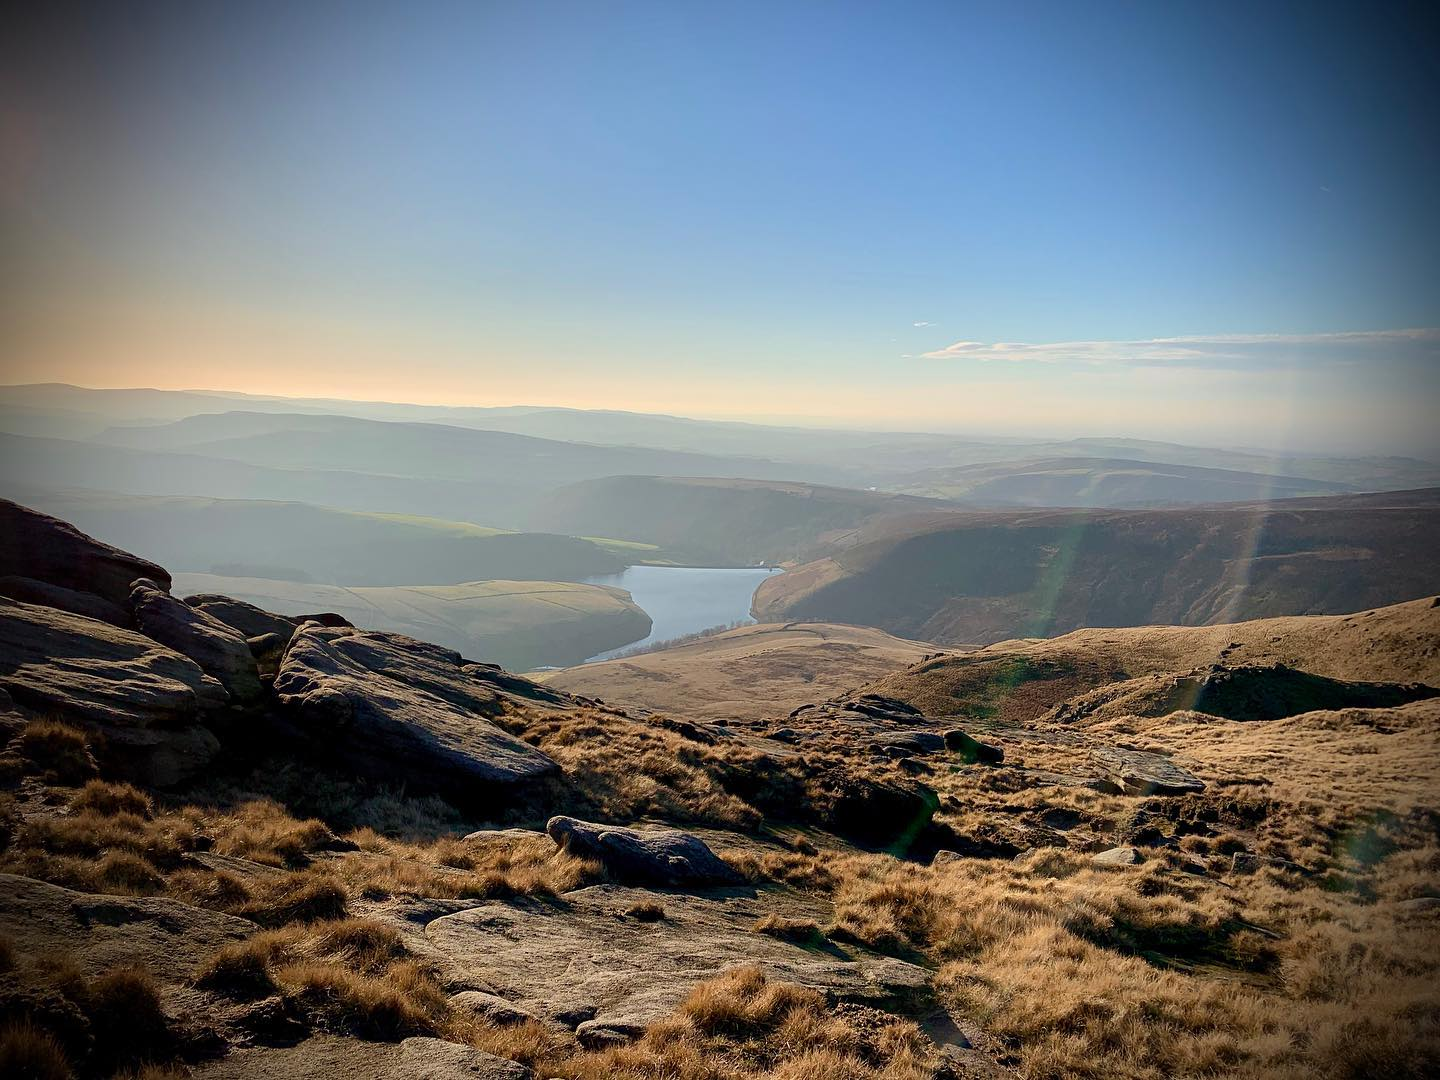 The Peak District Challenge will go ahead on 18-19 September as planned, with a few tweaks to acc...